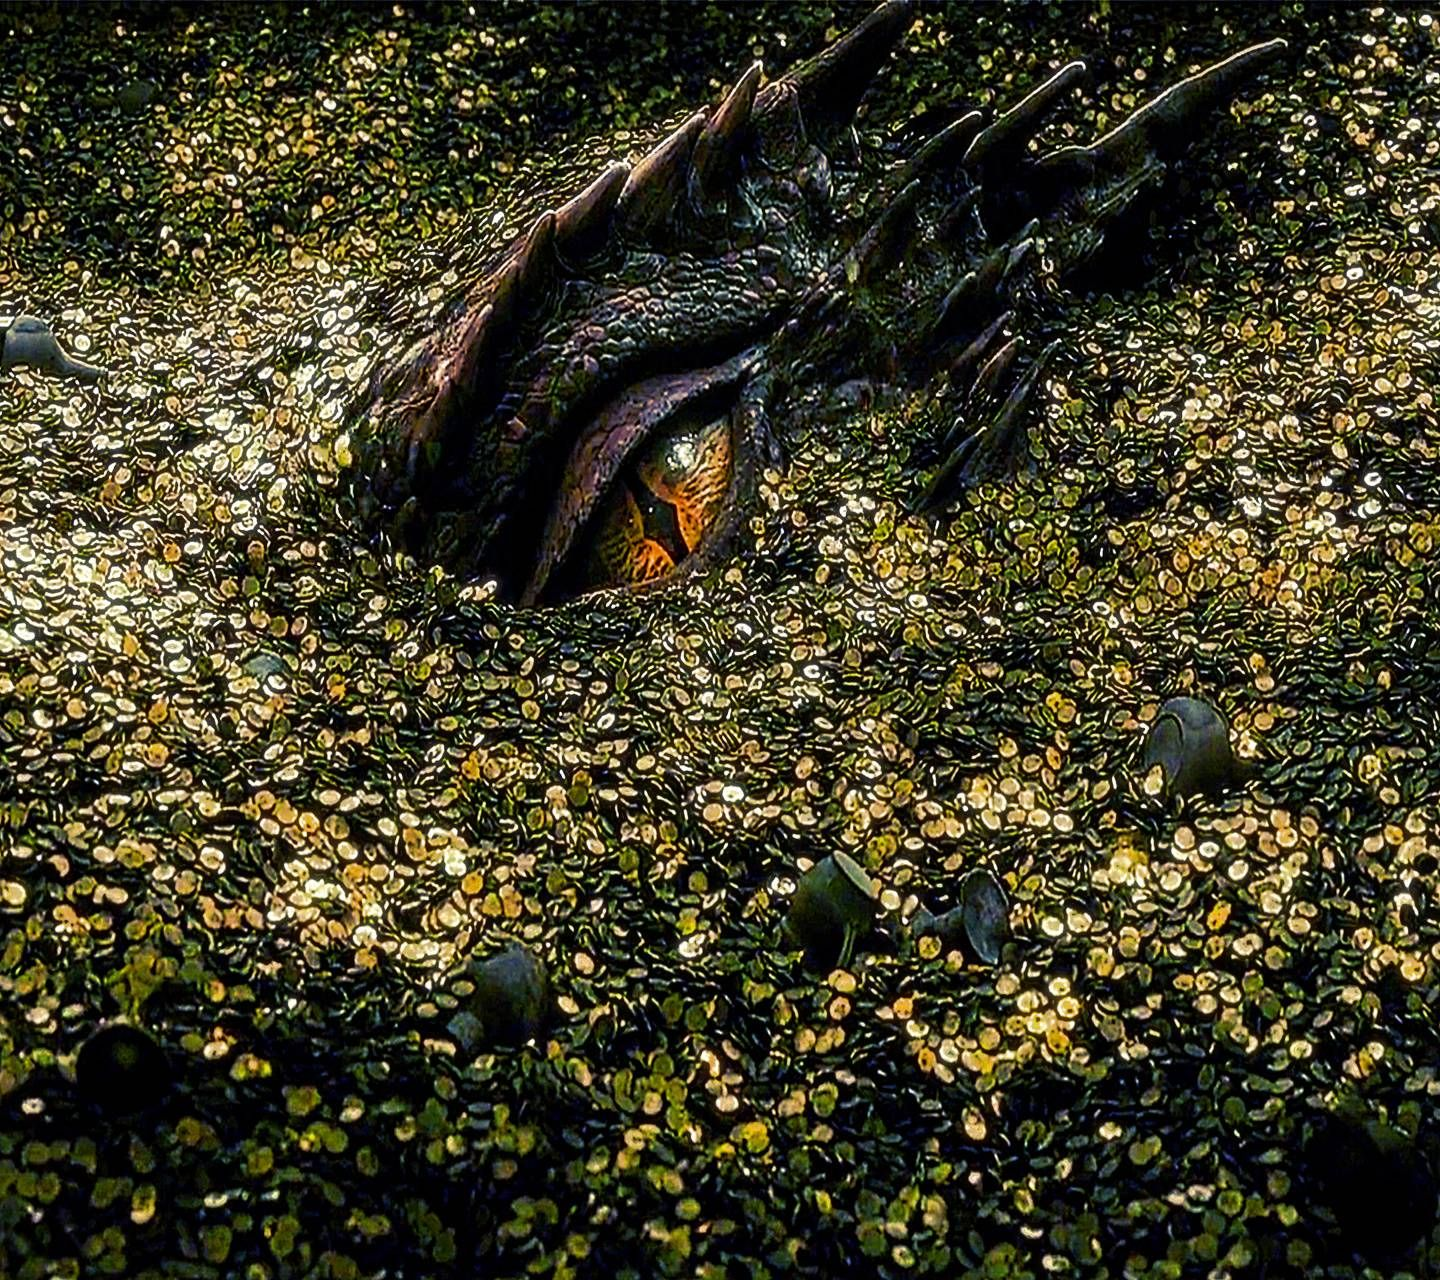 Download Eye Of Smaug Wallpaper By Adydesign E5 Free On Zedge Now Browse Millions Of Popular 2015 Wallpapers And Ri Smaug Godzilla Wallpaper Smaug Dragon